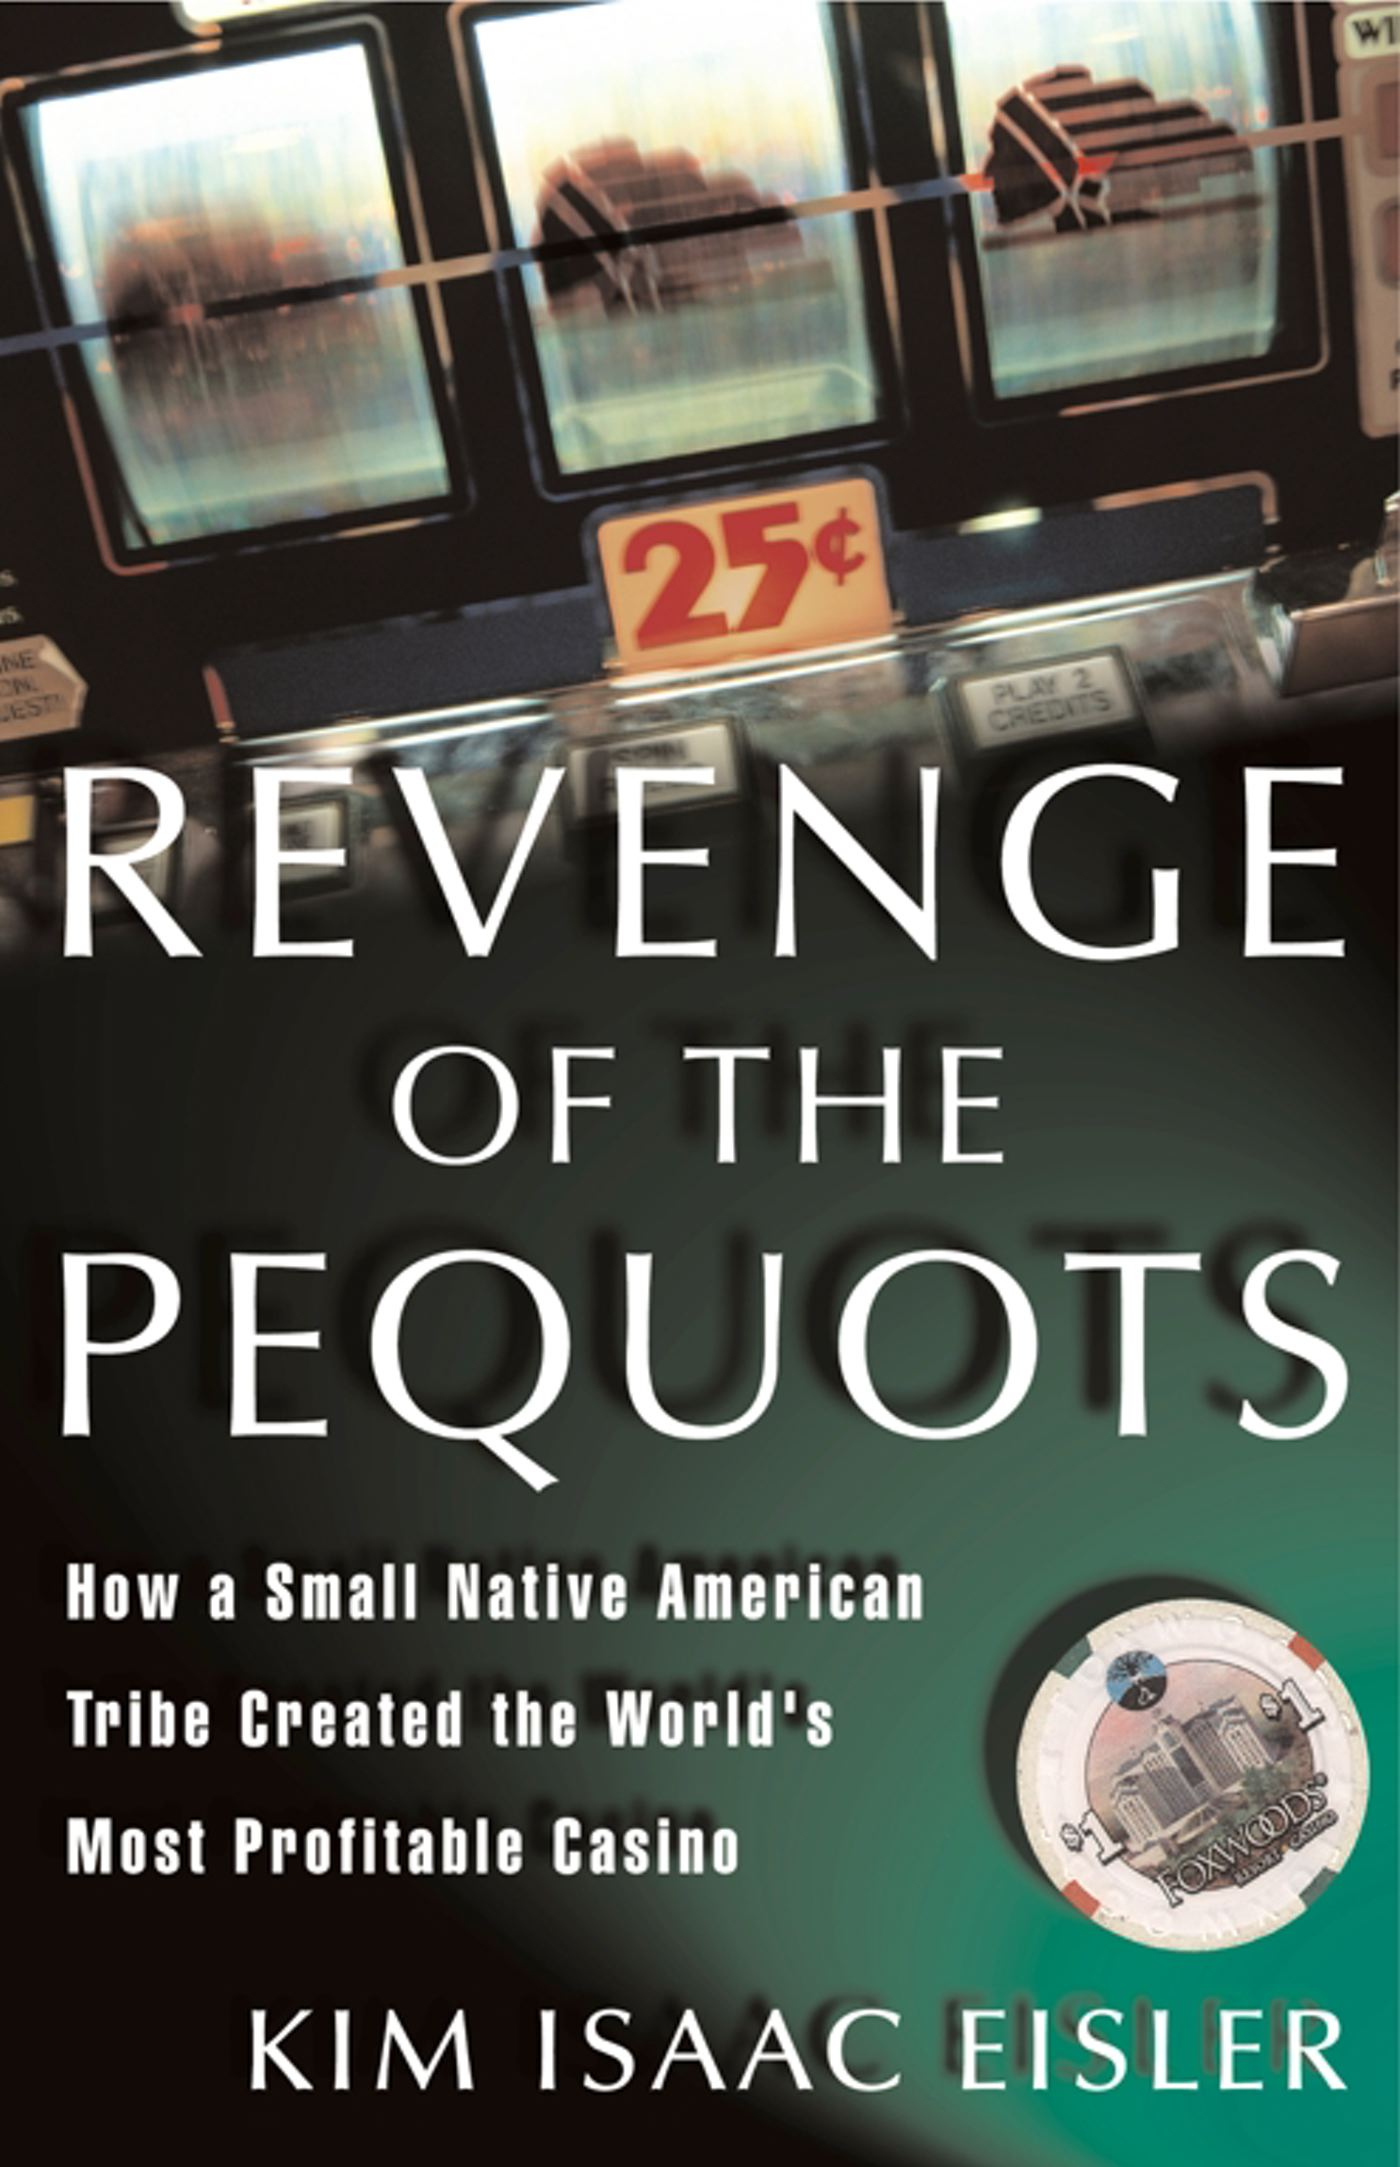 Revenge of the Pequots eBook by Kim Isaac Eisler | Official